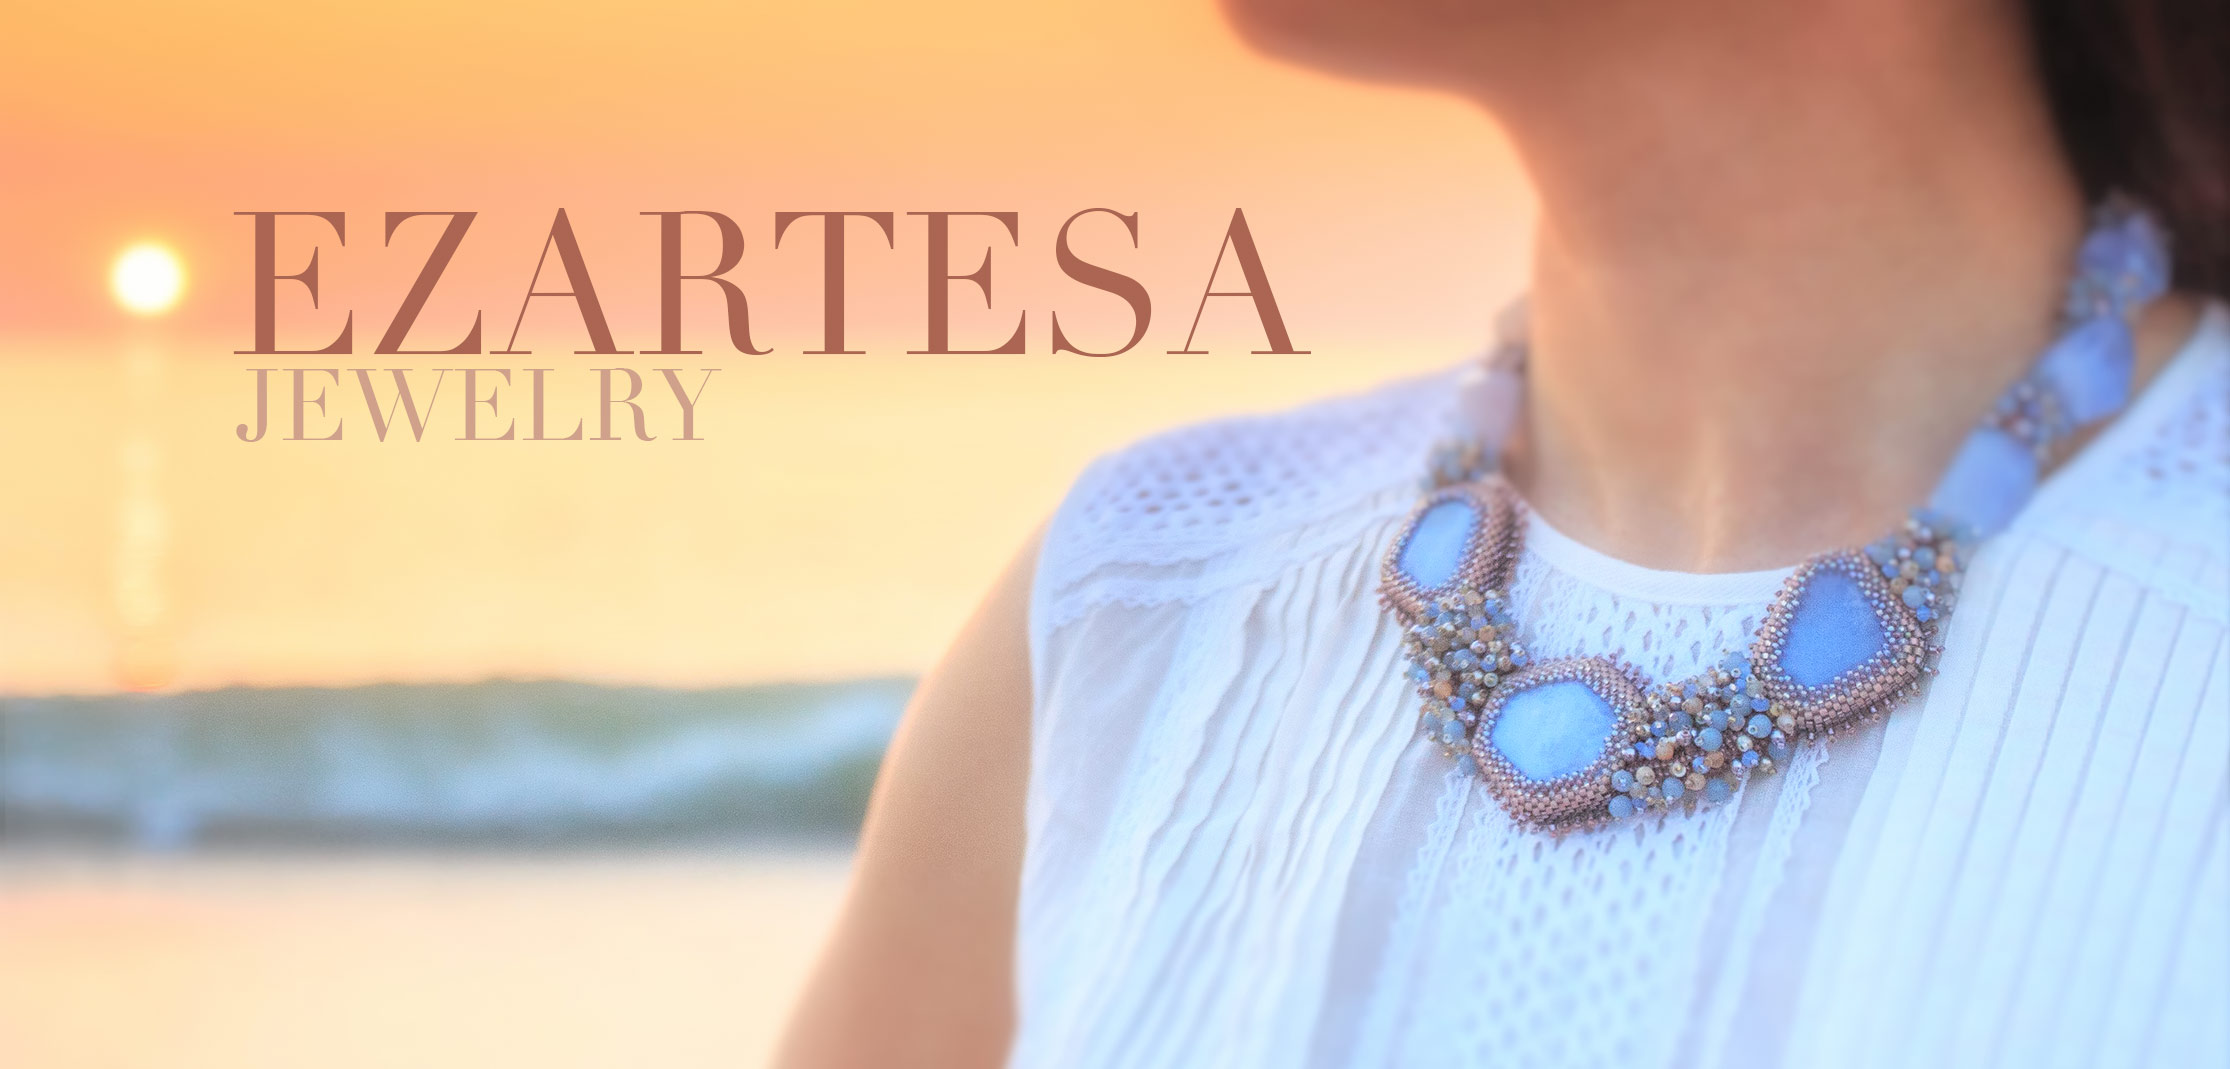 Ezartesa jewelry for sale